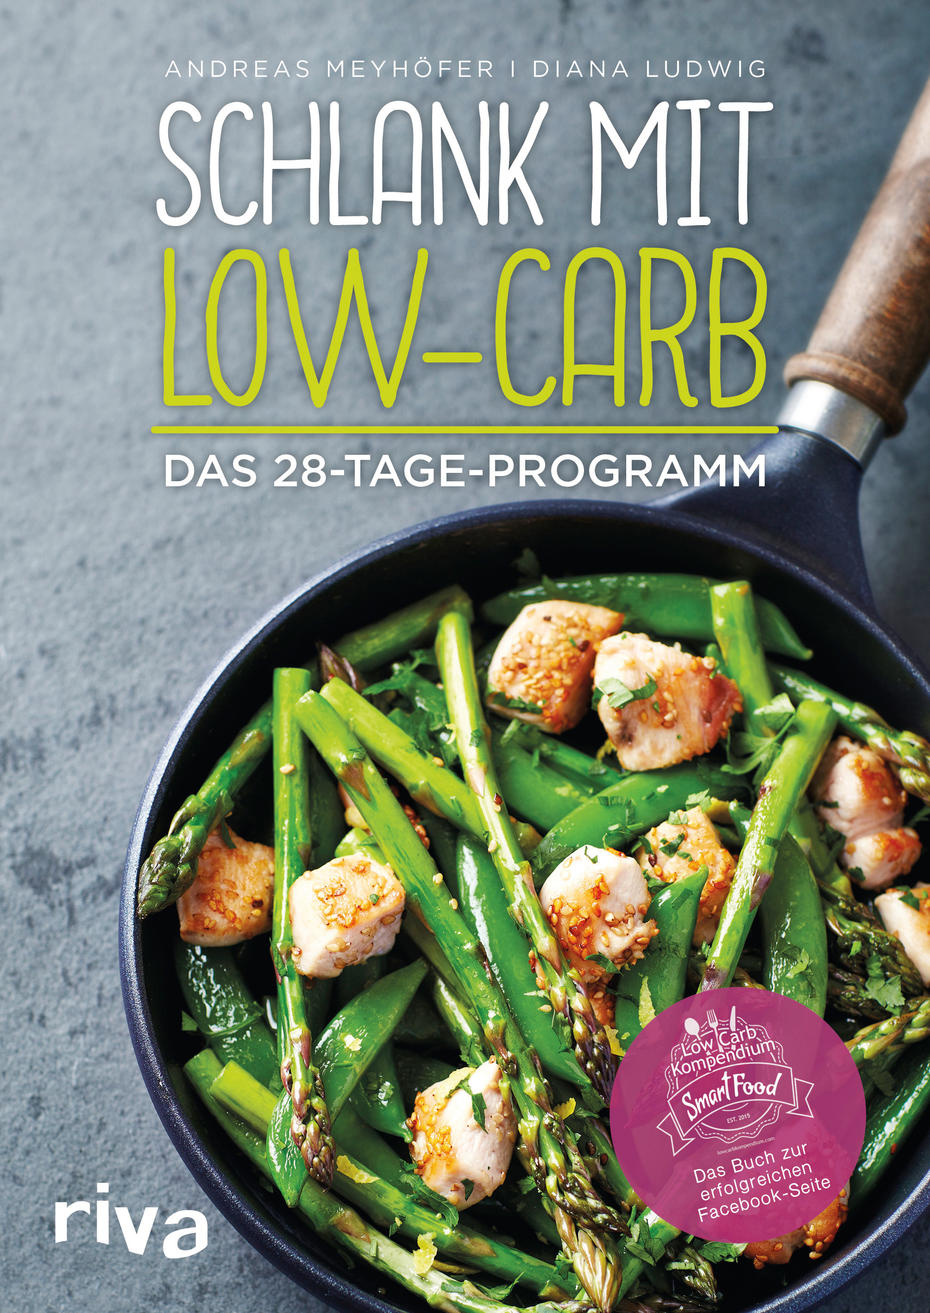 Andreas Meyhöfer, Diana Ludwig: Schlank mit Low-Carb – Das 28-Tage- Programm. Riva, € 19,99.